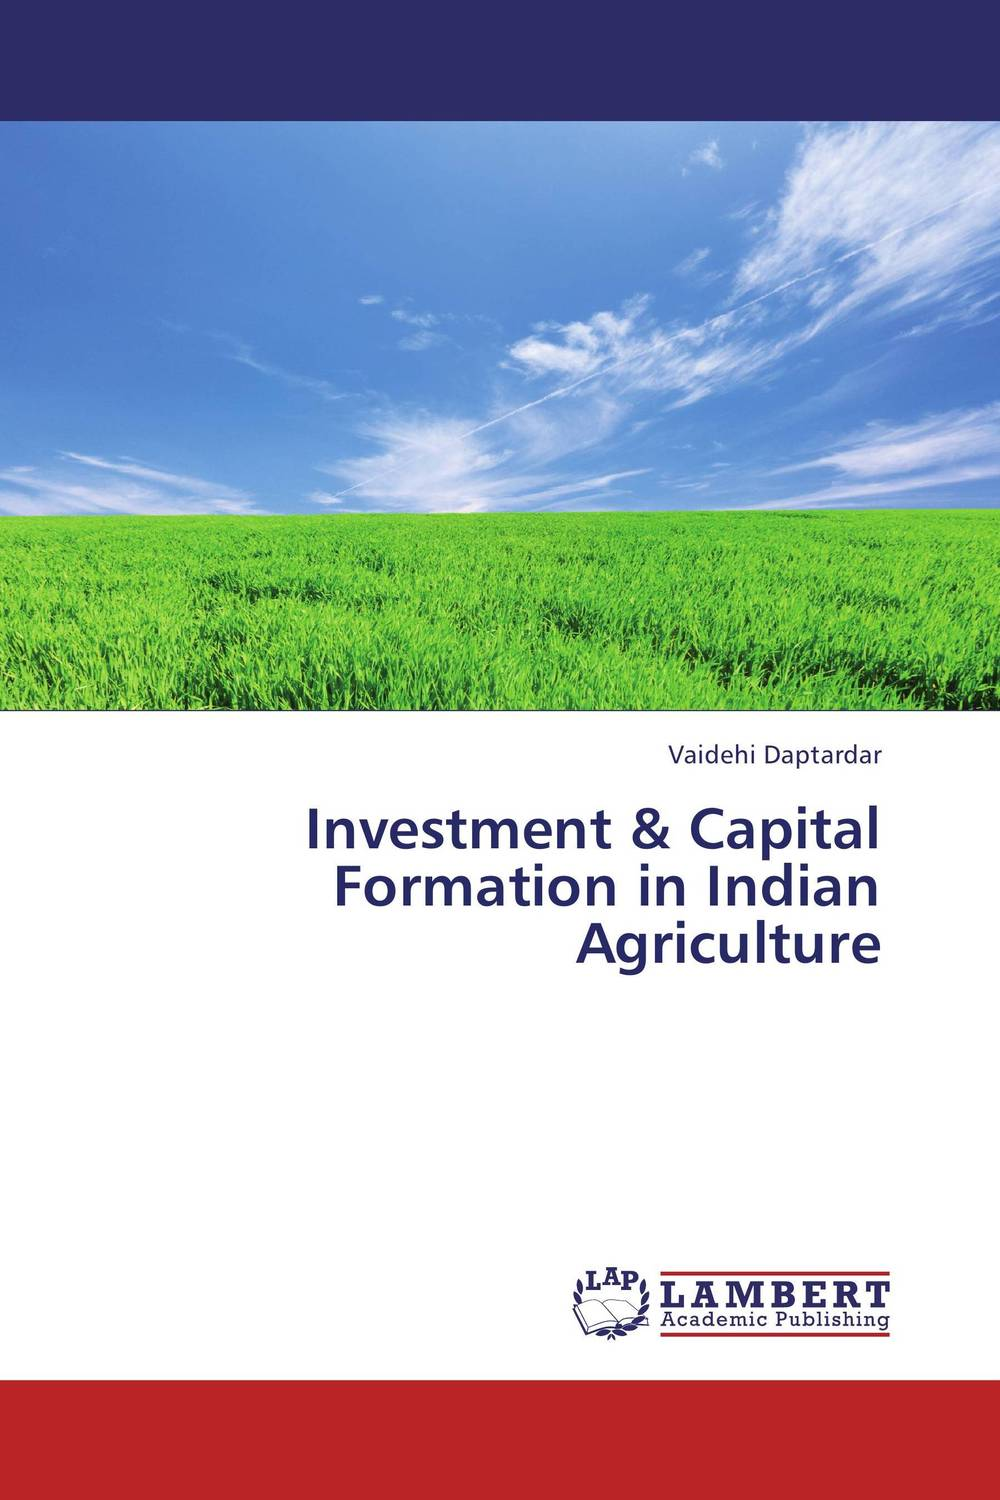 Investment & Capital Formation in Indian Agriculture i manev social capital and strategy effectiveness an empirical study of entrepreneurial ventures in a transition economy